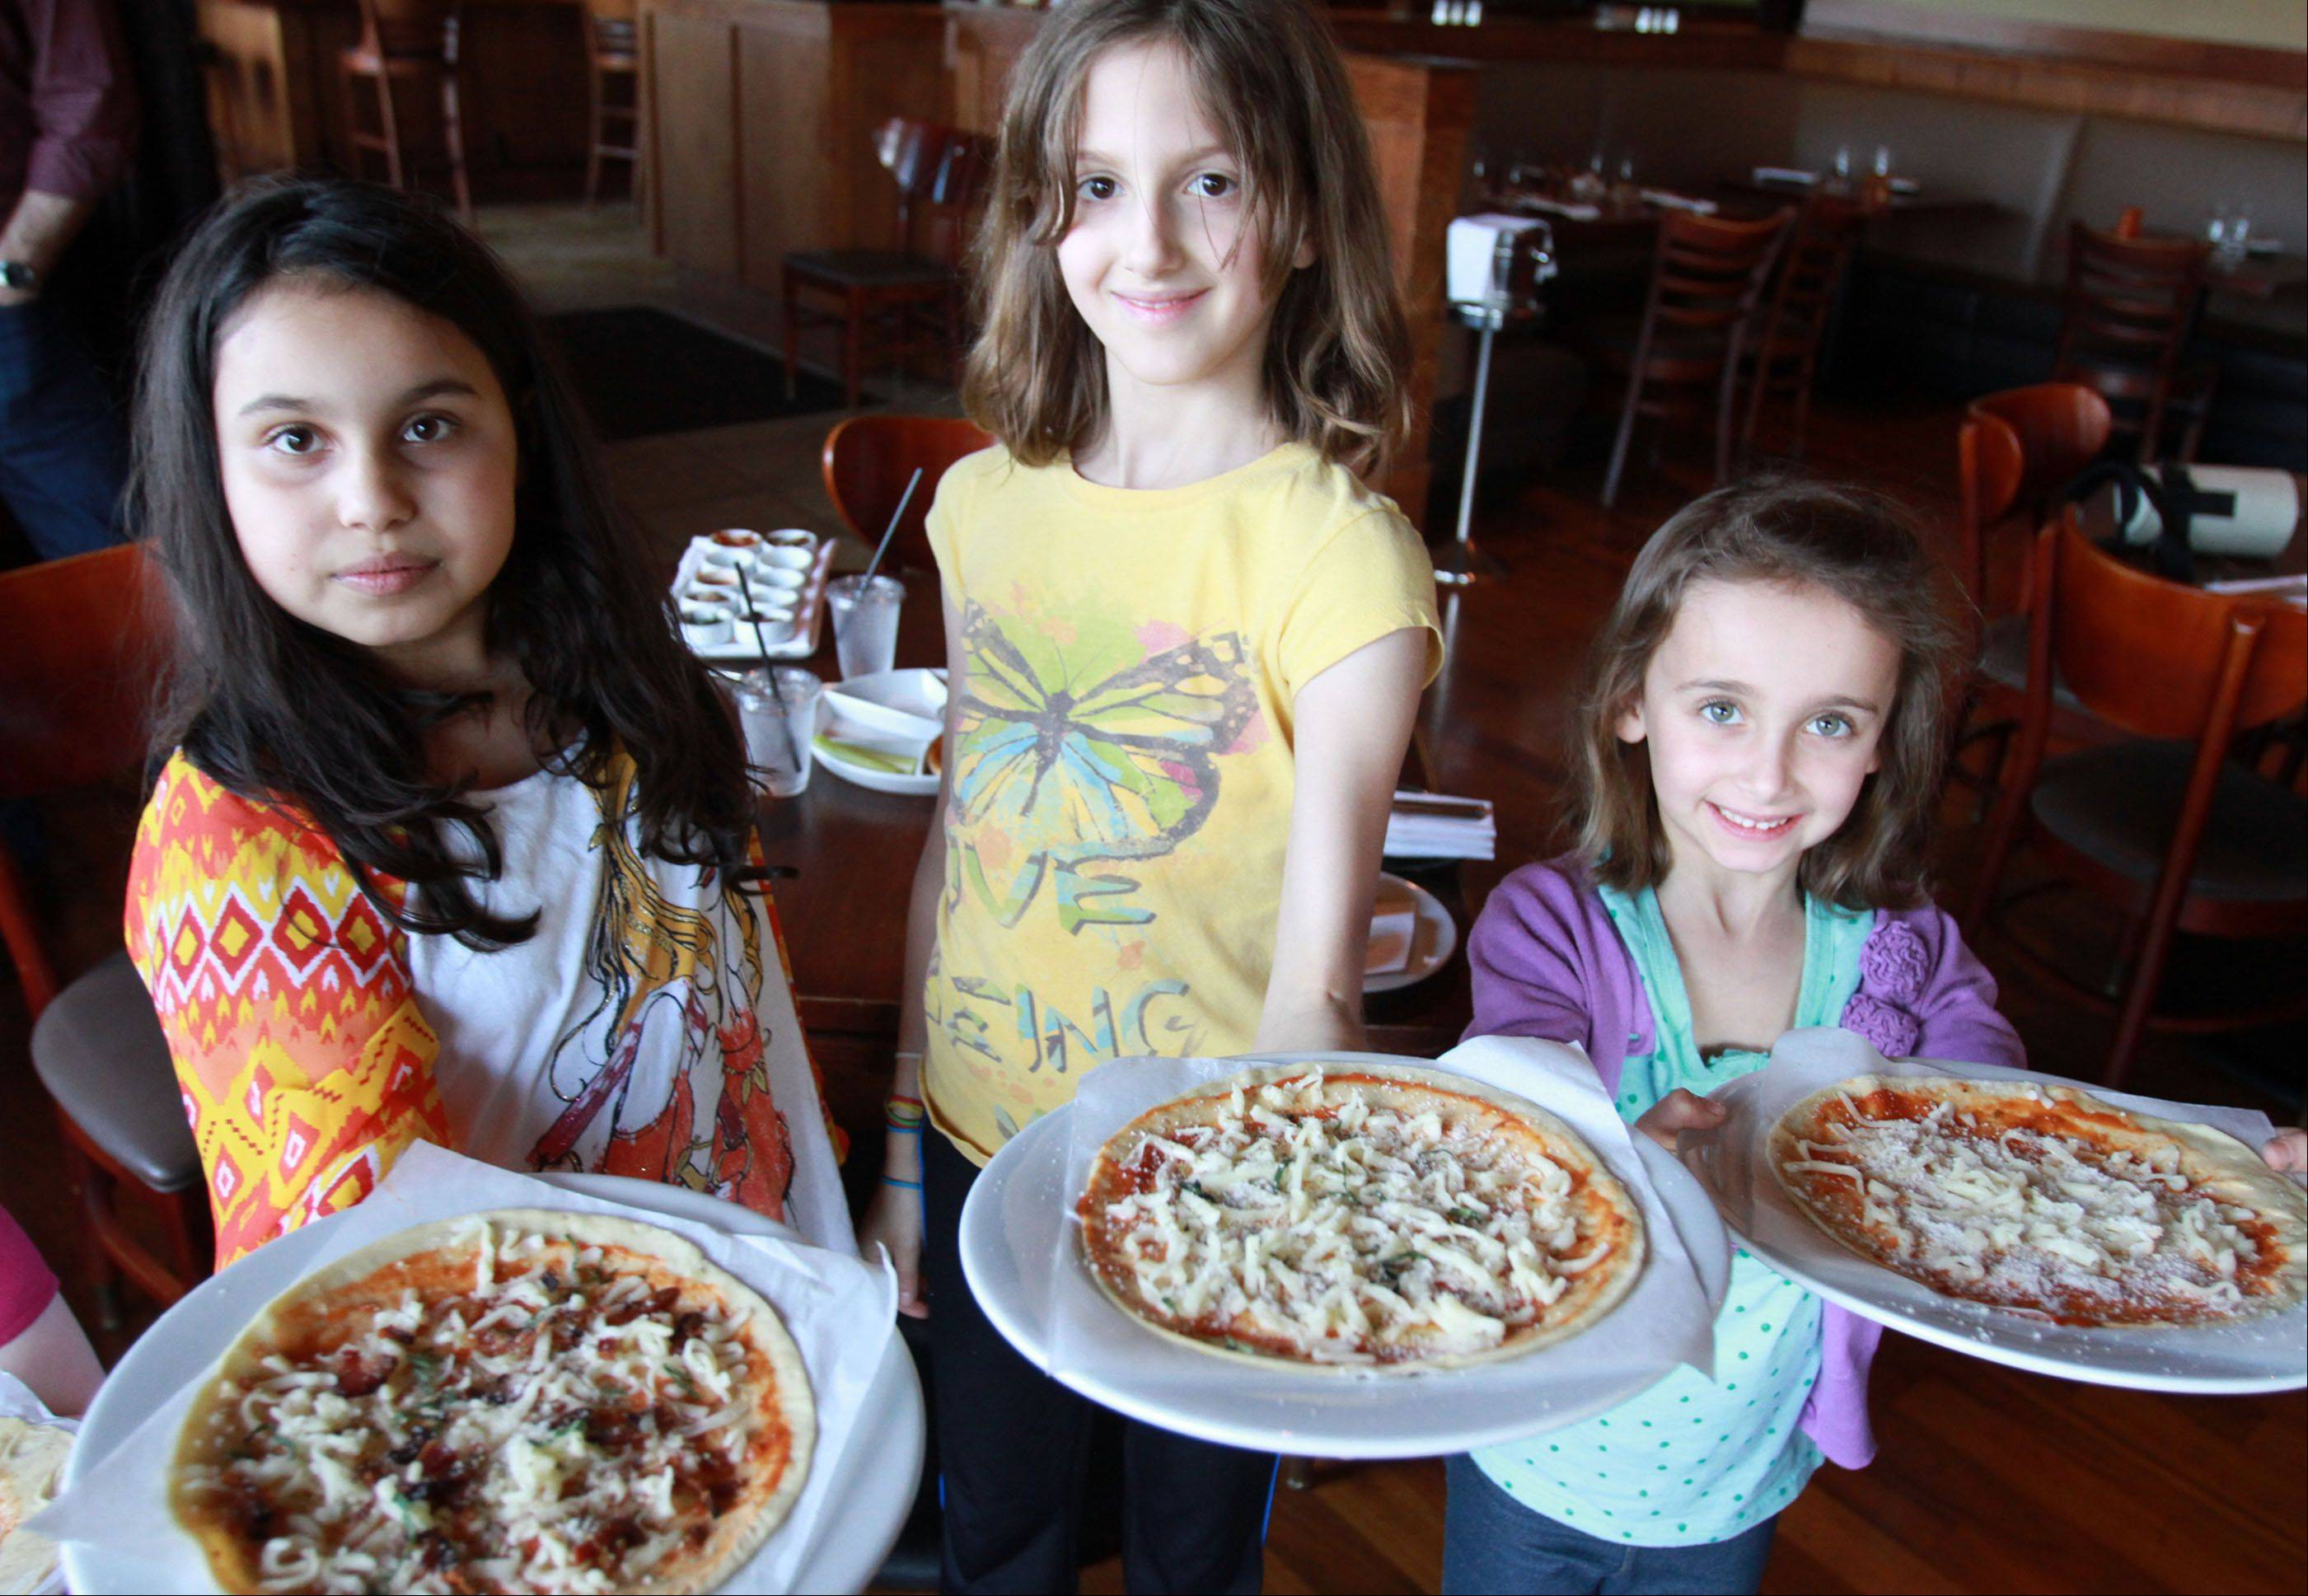 "Jaya Nambiar, 9, from left, Kaya Booth, 9, both of Wilmette, and Helena Samson, 6, of Northbrook show healthy pizzas they made for themselves at Prairie Grass Cafe in Northbrook on Friday, April 26. The pizza making was hosted by Sarah Stegner, co-chef and co-owner, who is one of the founding members of the ""Healthy Fare for Kids"" initiative, which encourages restaurants to offer healthier food for children."